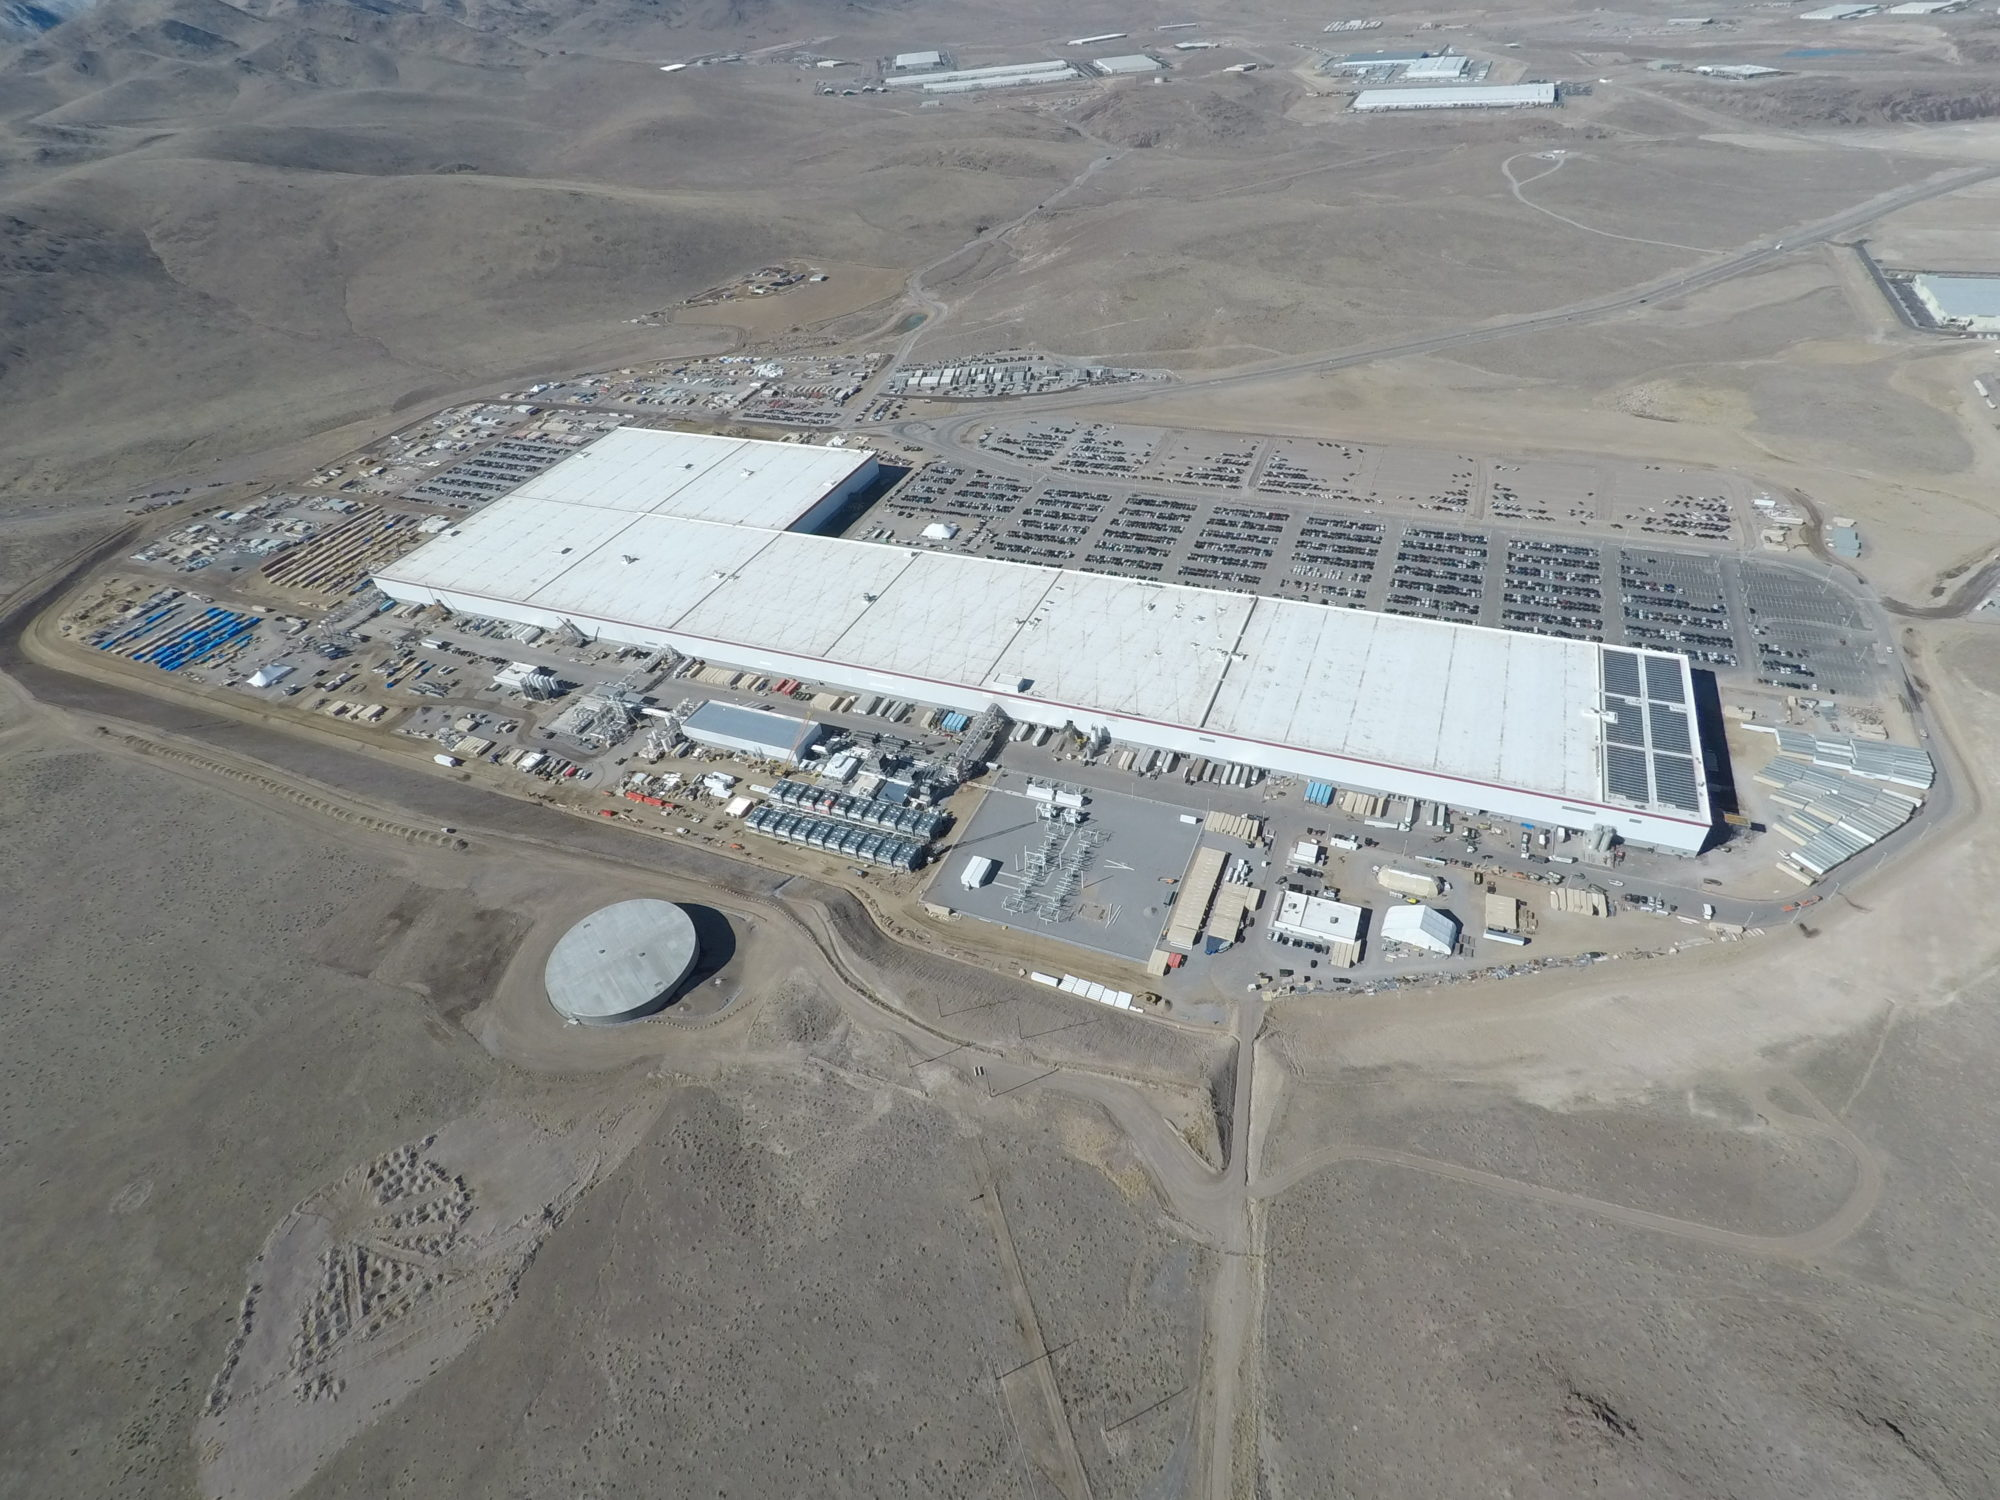 Tesla GIgafactory 1 as of March 12, 2018 (2) [Credit: Teslarati]